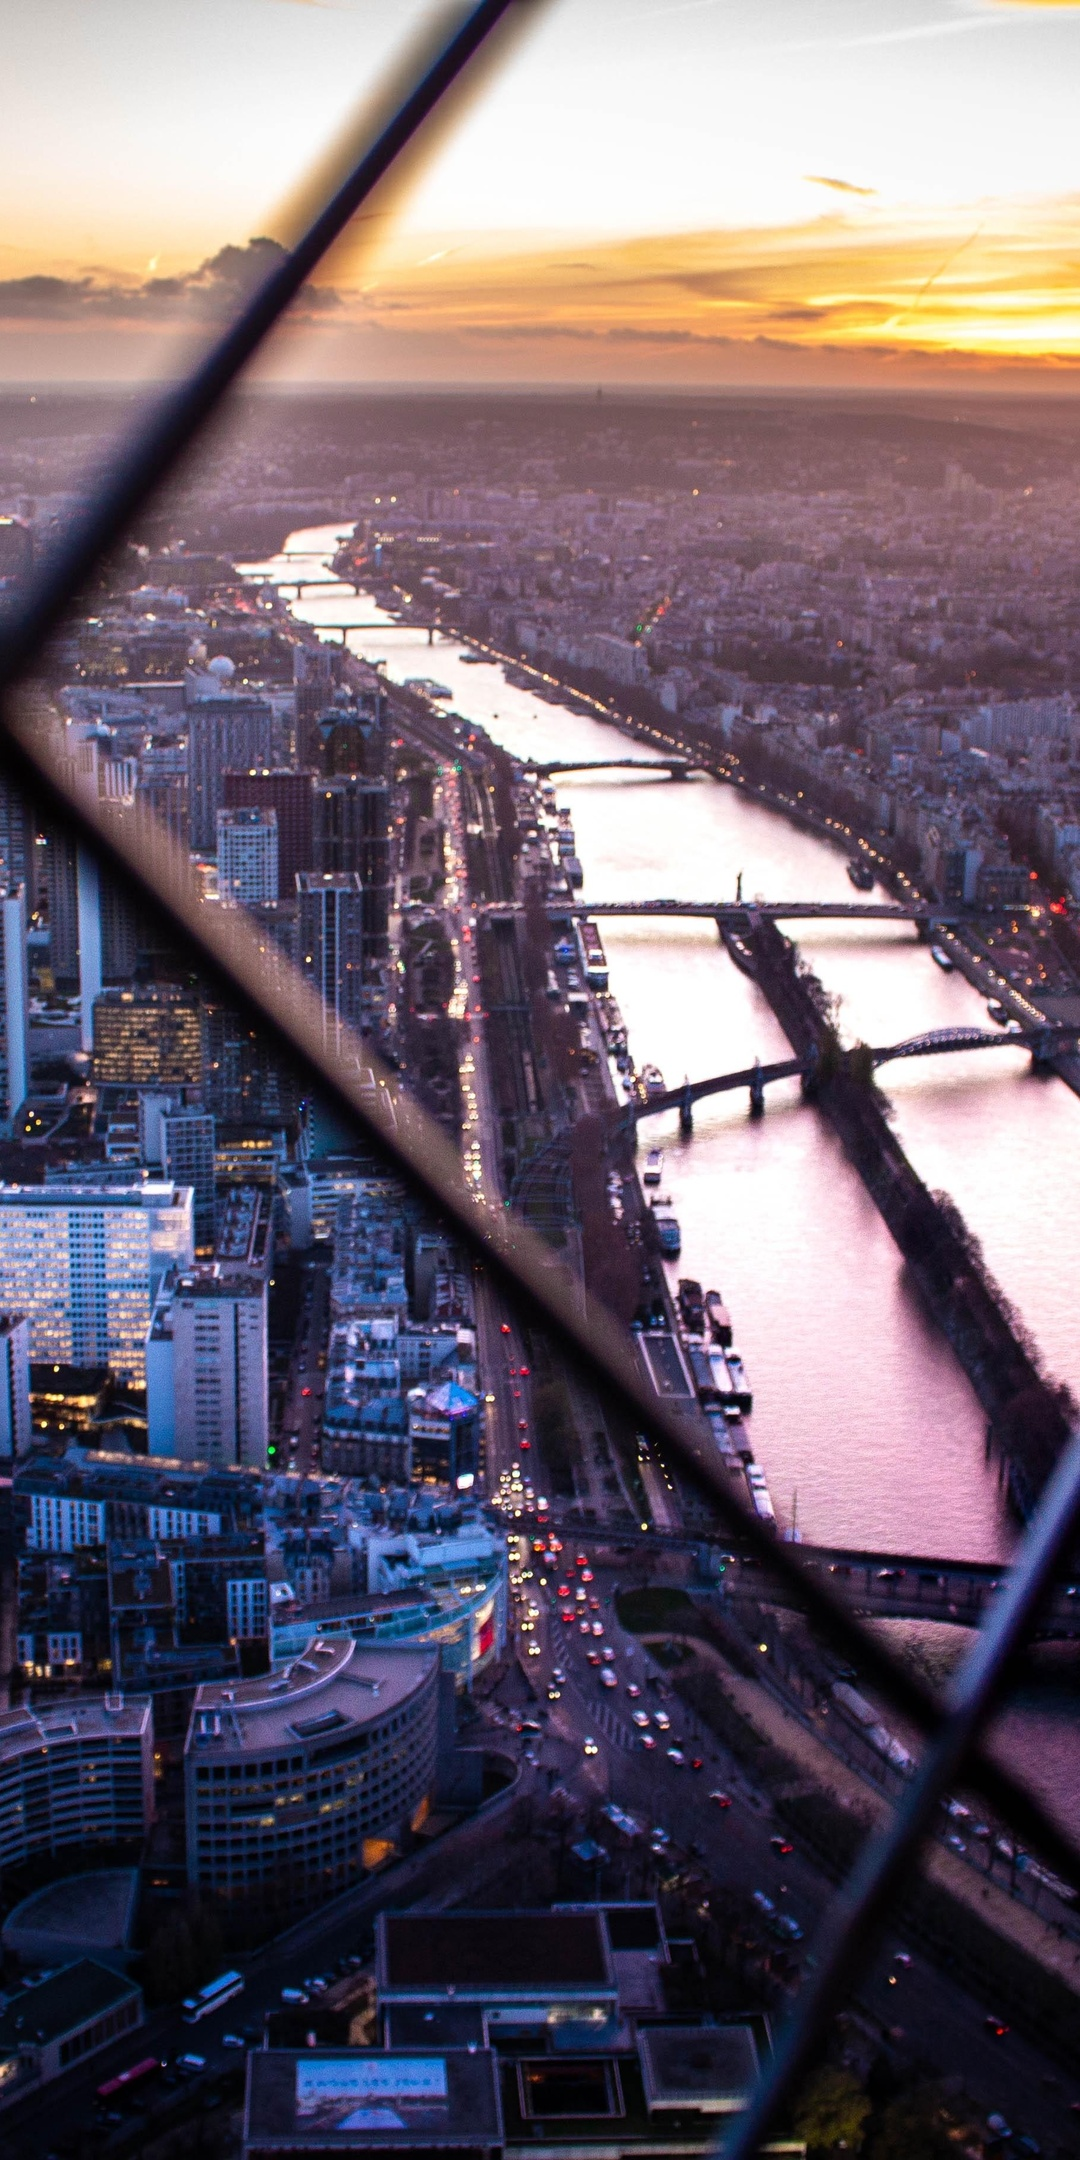 paris-view-from-eiffel-tower-top-flower-5k-ox.jpg